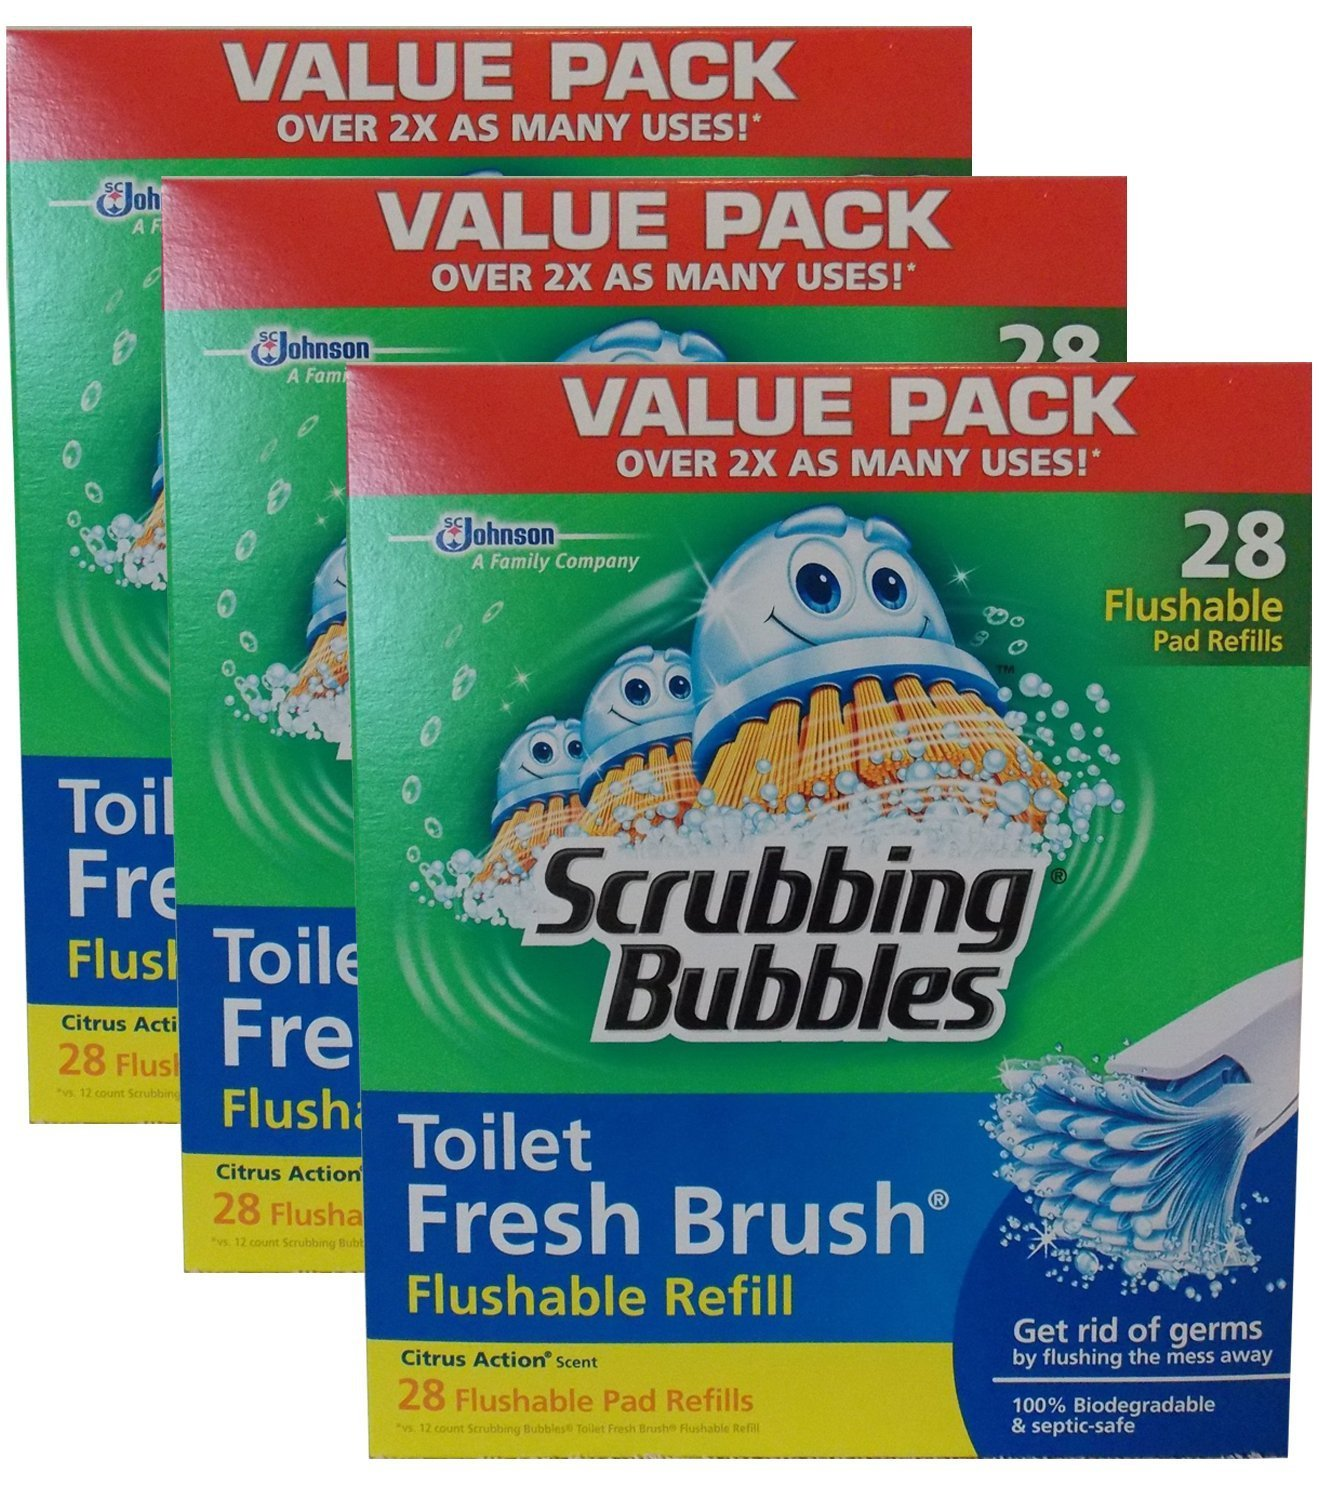 Scrubbing Bubbles Toilet Fresh Brush Flushable Refills (28 count, pack of 3) B00NY9JX3Y